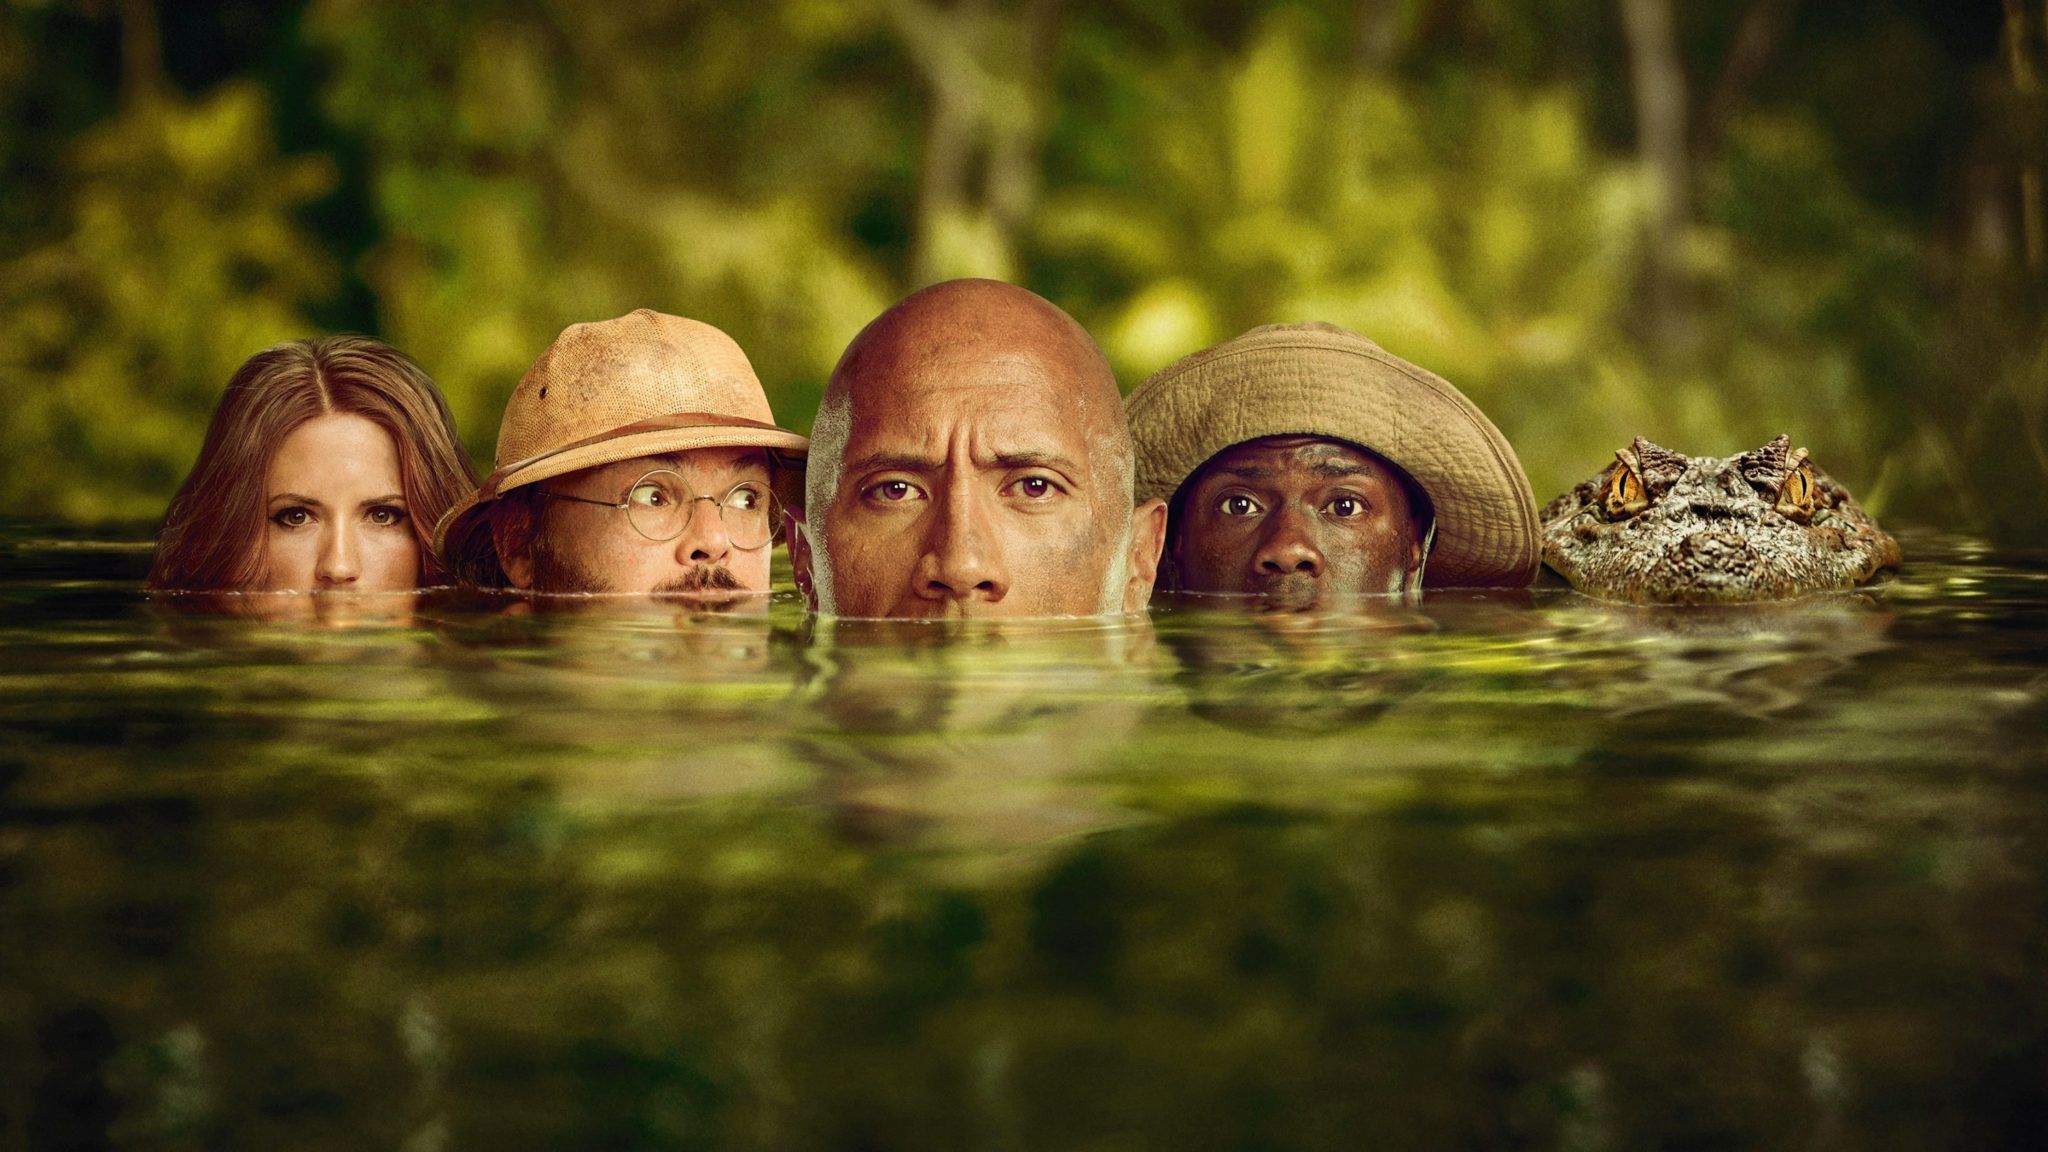 Jumanji Welcome to The Jungle | Movie Wallpapers